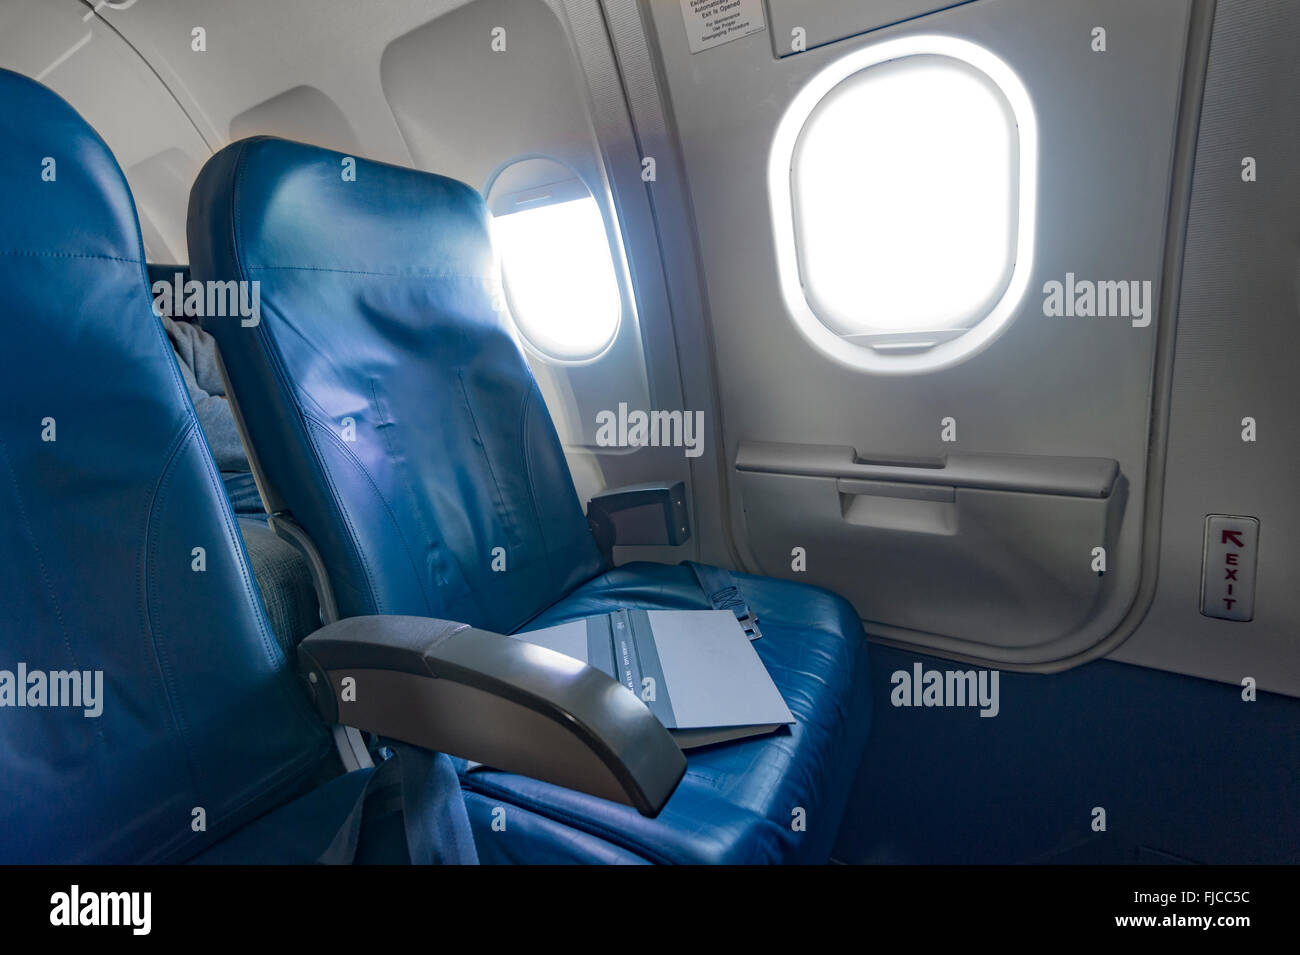 Airplane Seat With Book - Stock Image